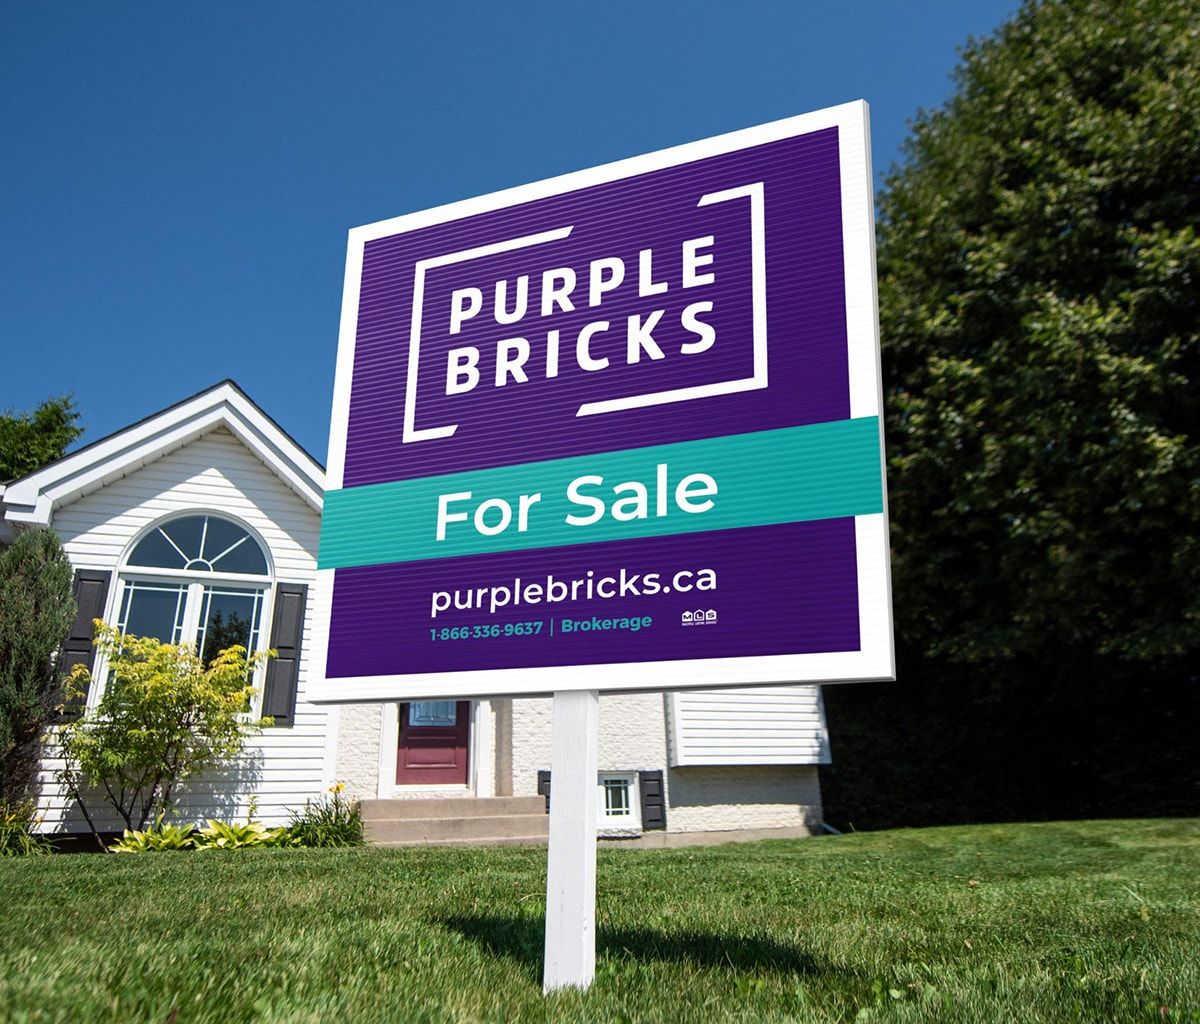 Purplebricks lawn sign in Manitoba.